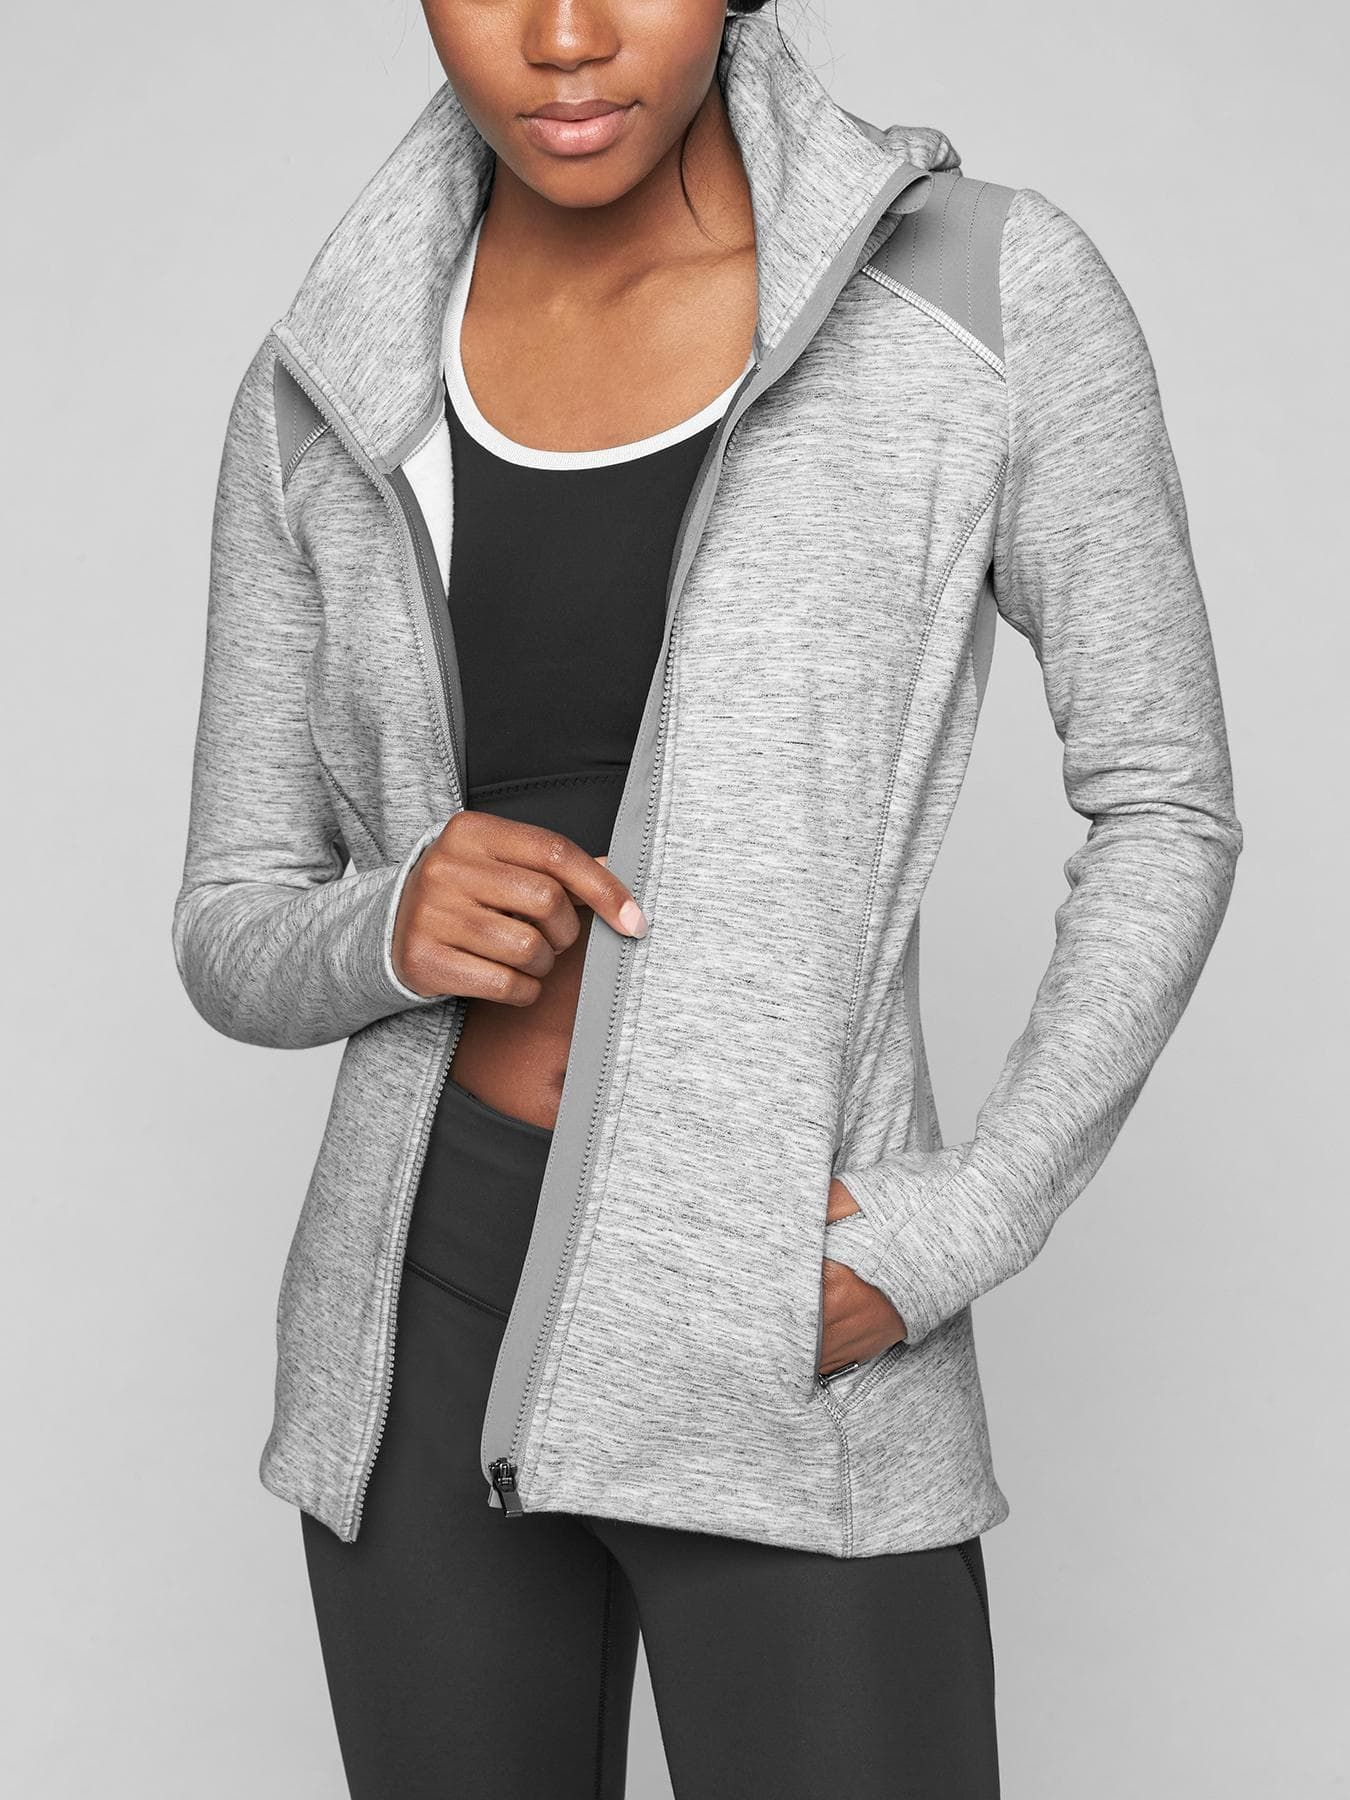 Pin By Doe Mcdade On Peru Activewear Clothes Hoodies Active Wear Tops [ 1800 x 1350 Pixel ]